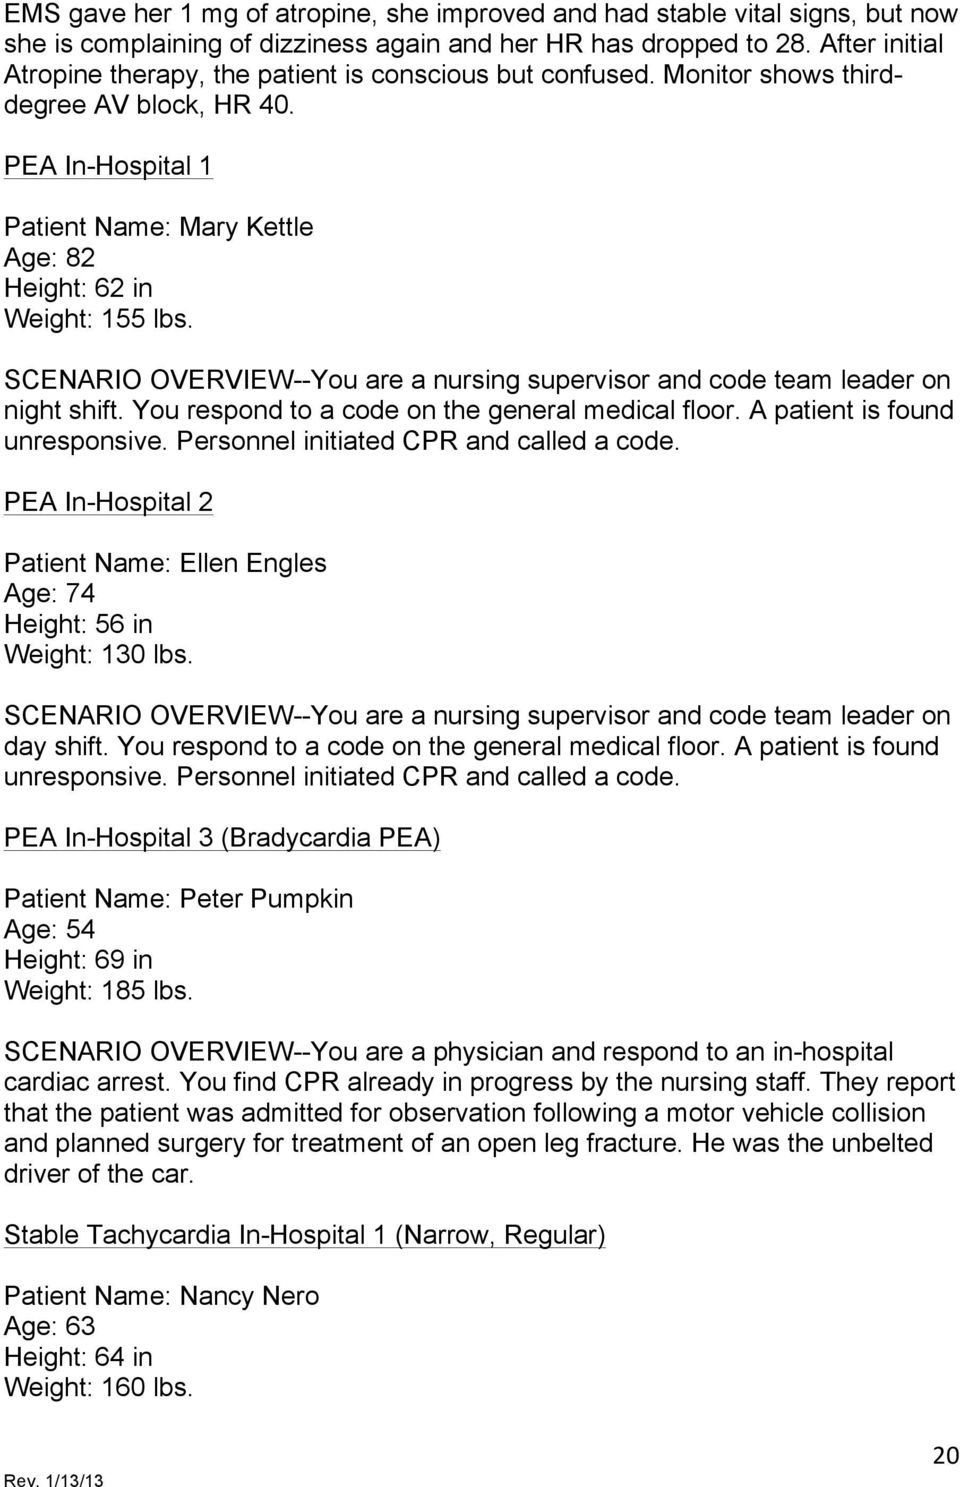 SCENARIO OVERVIEW--You are a nursing supervisor and code team leader on night shift. You respond to a code on the general medical floor. A patient is found unresponsive.